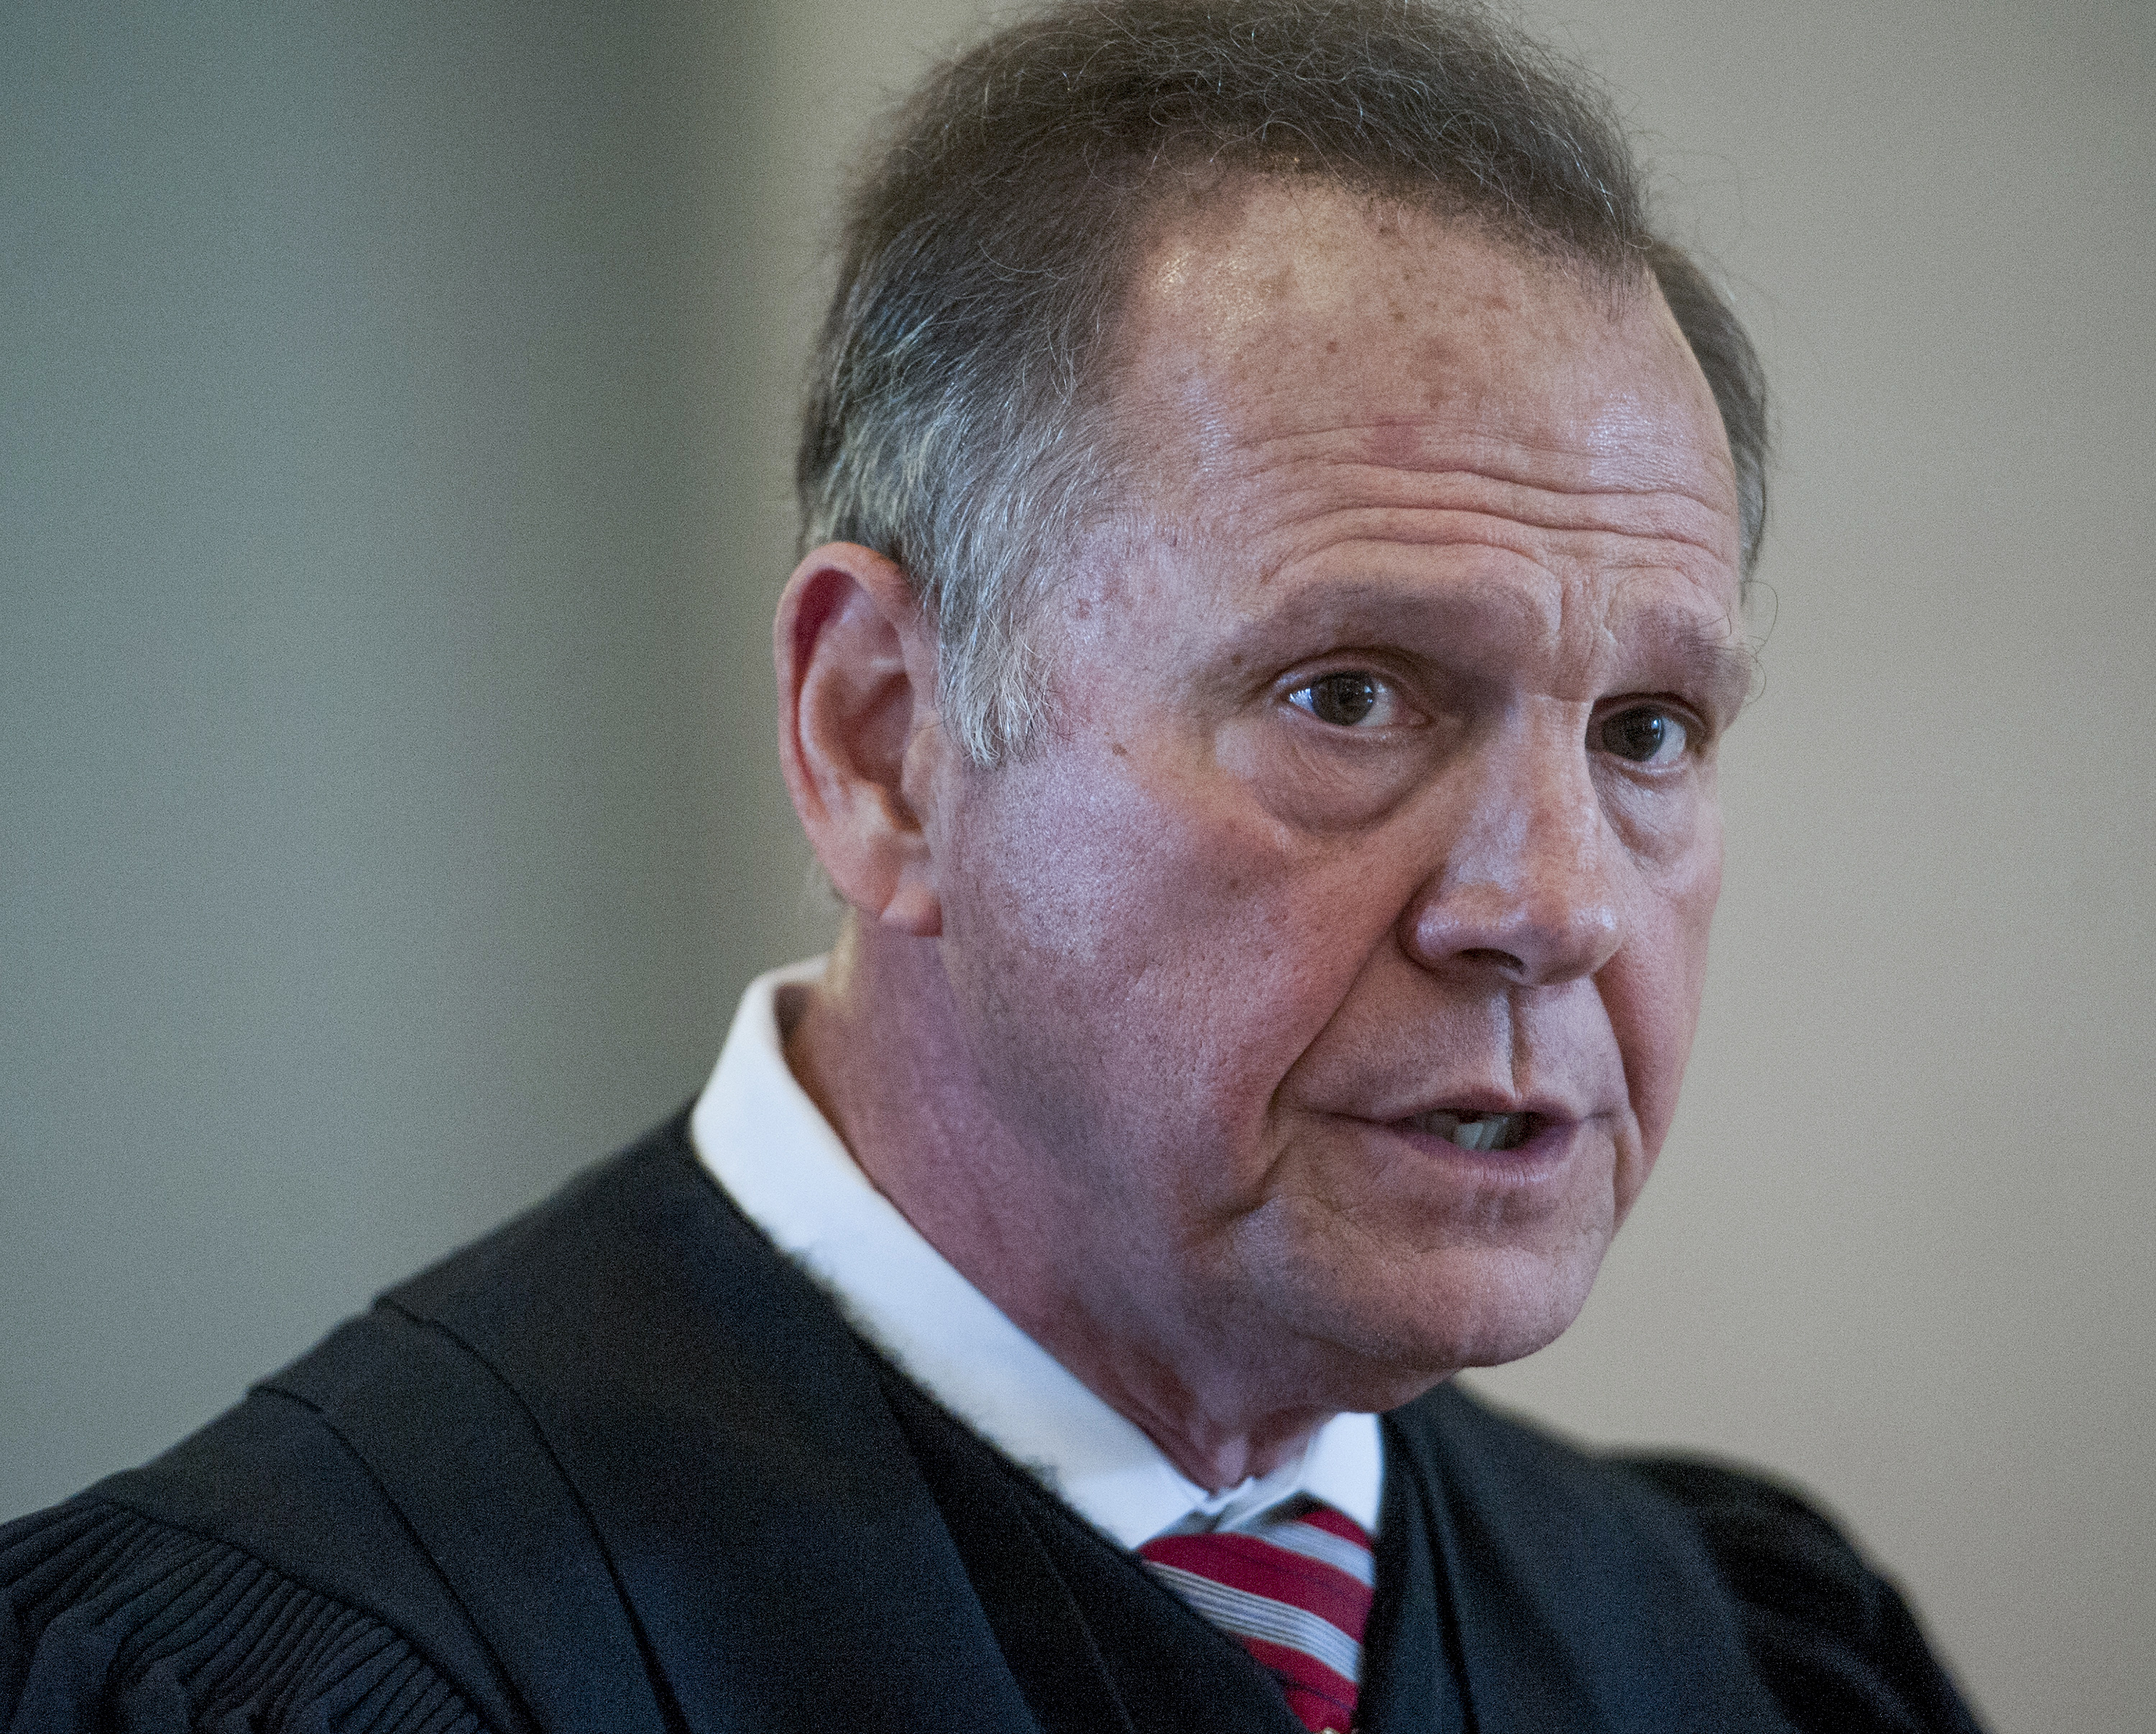 Roy Moore speaks during a news conference at the Judicial Building in Montgomery, Ala., on April 27, 2016.